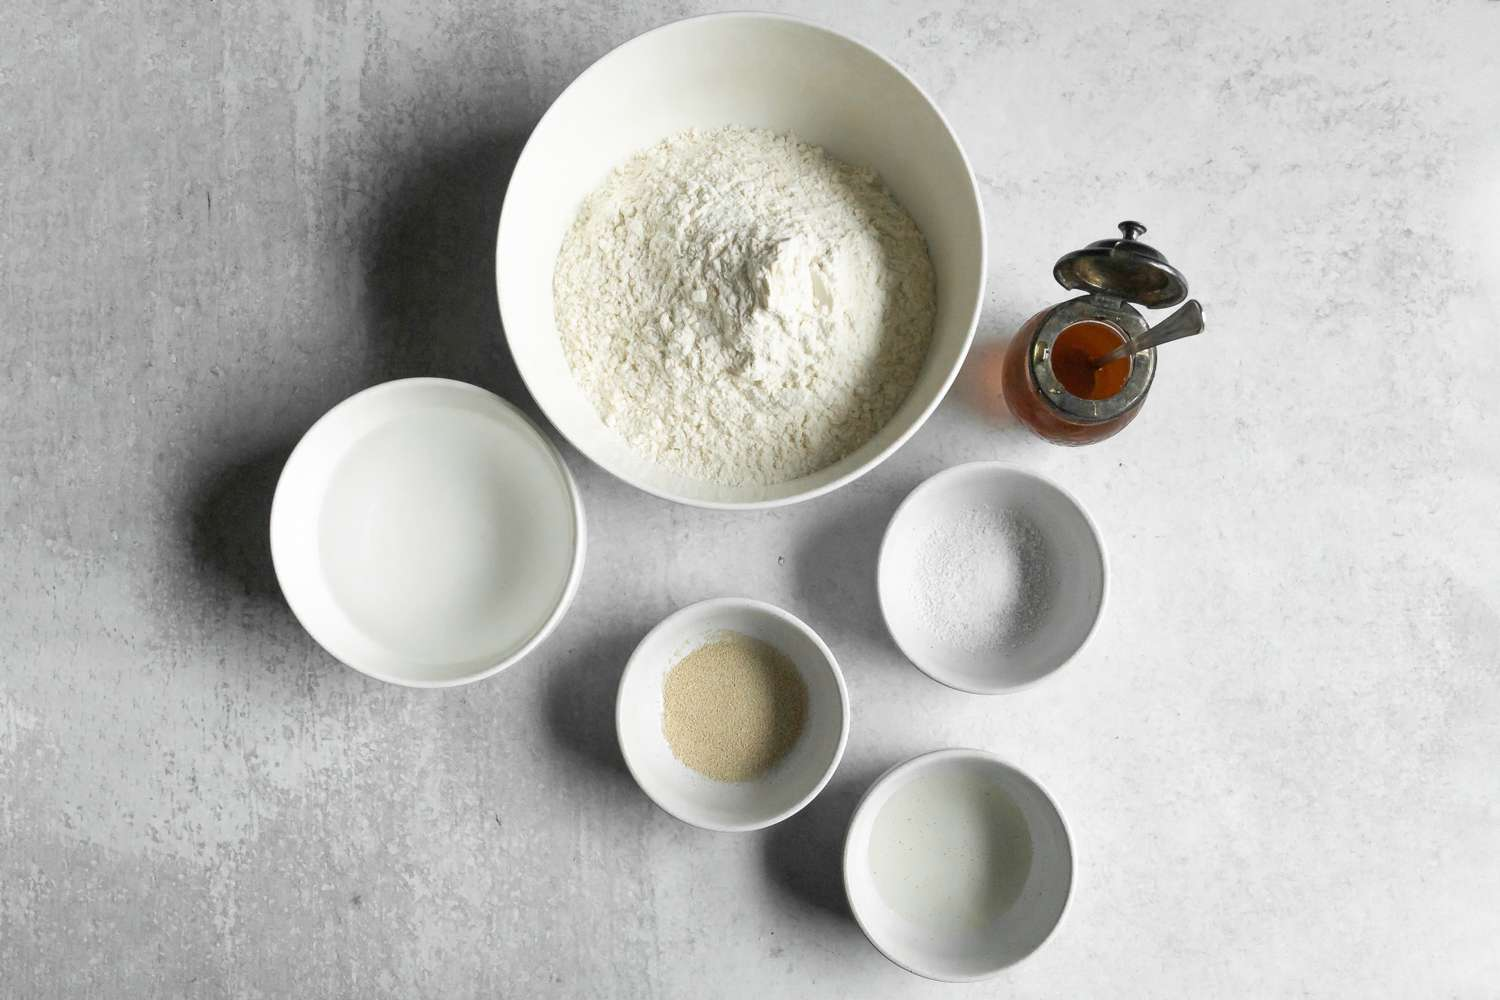 Wolfgang Puck's Pizza Dough ingredients